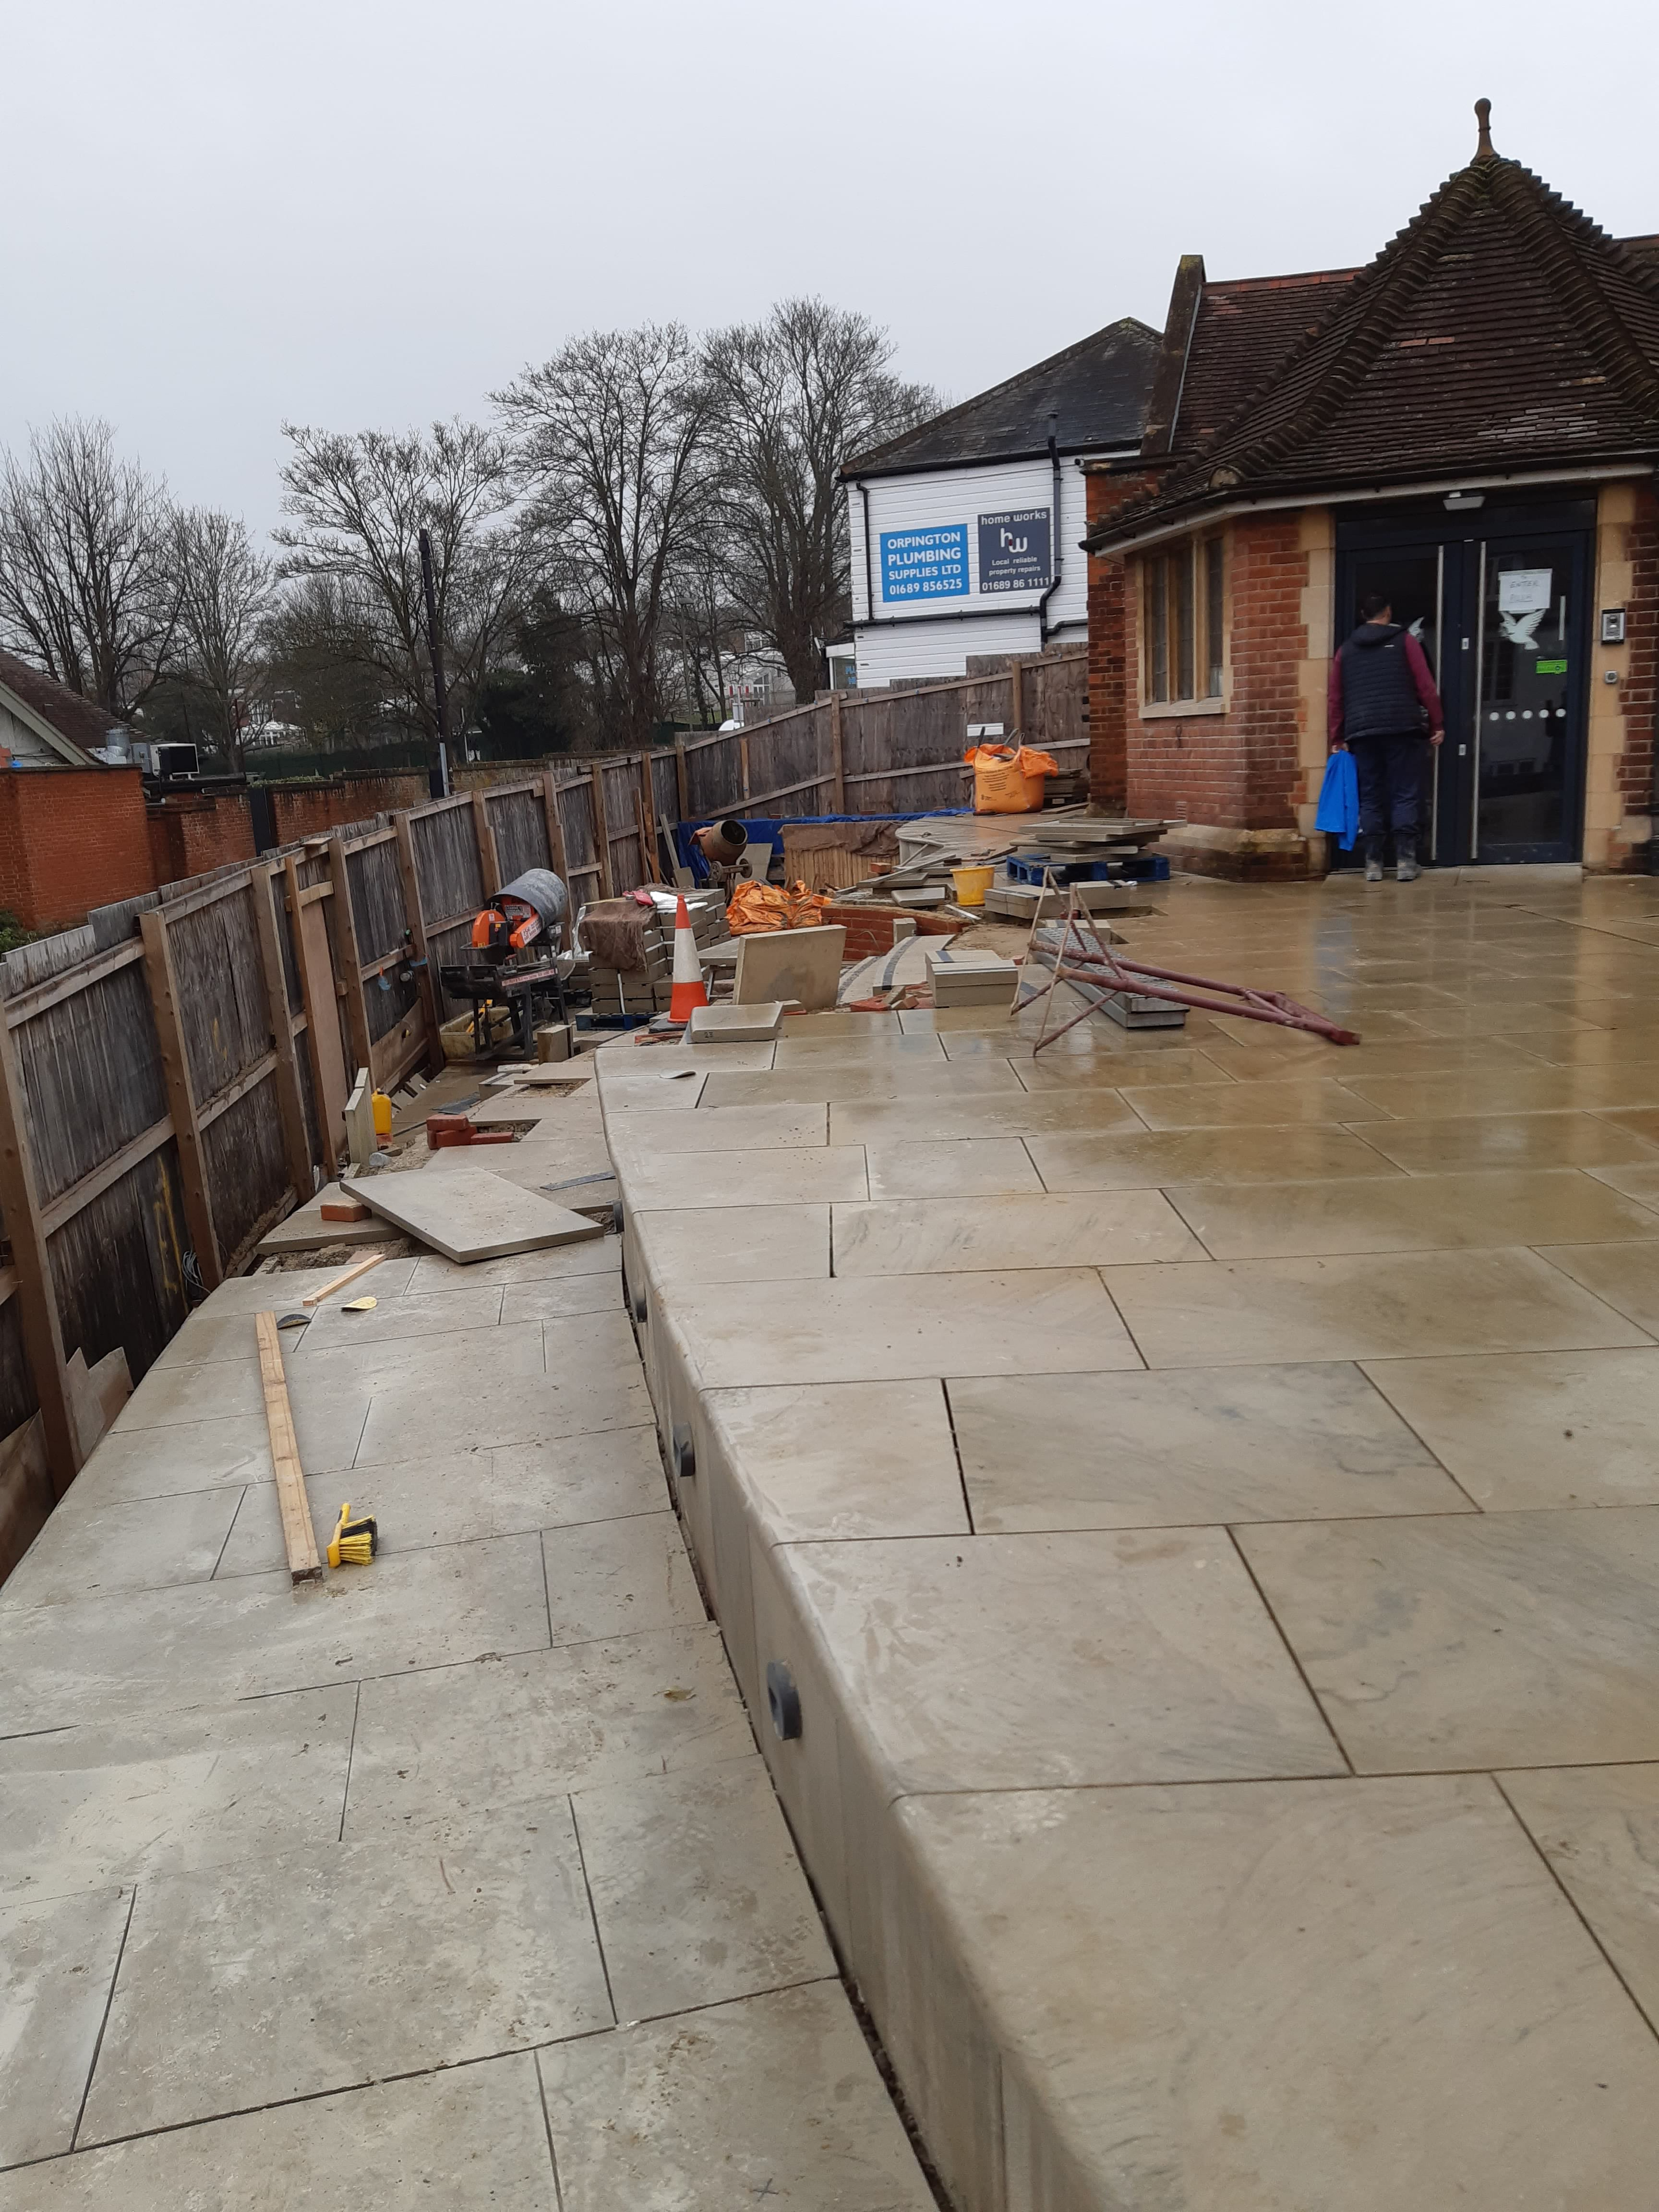 26.01.20 - View of the works at the front of the church. Here looking down the ramp towards the steps.